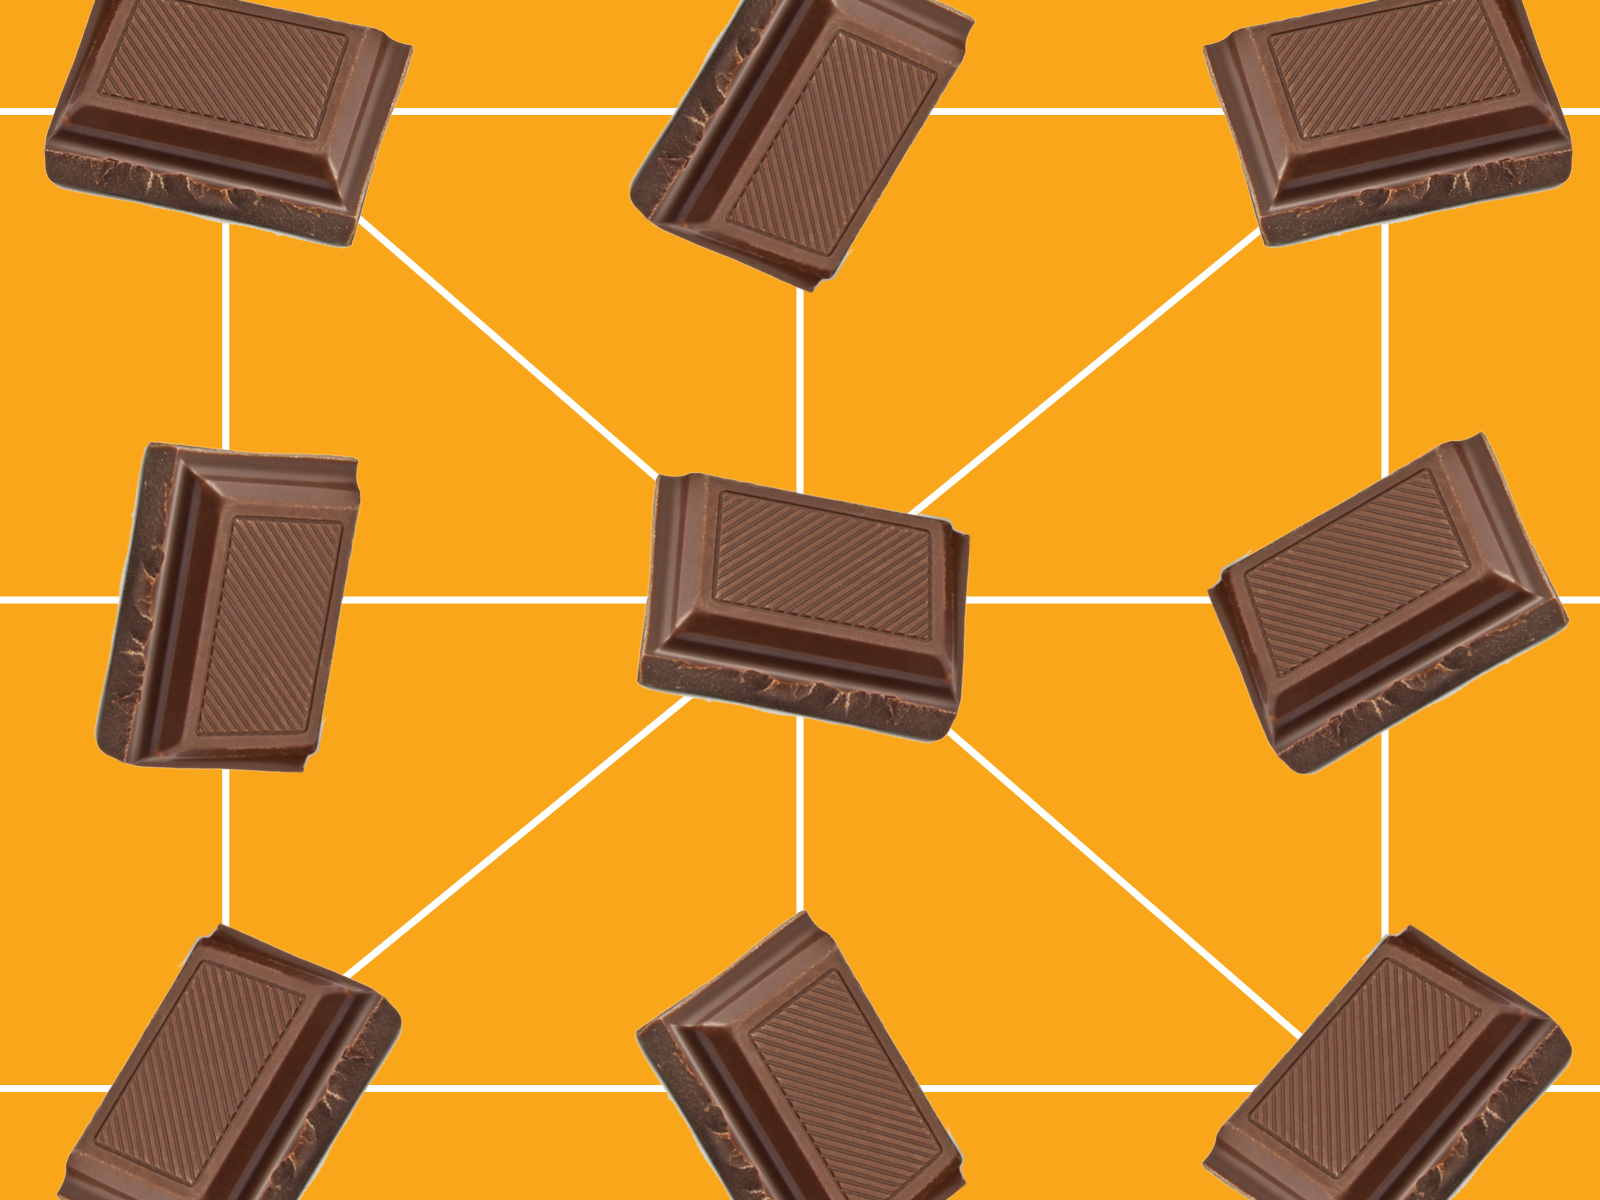 Blockchain chocolate bars visual